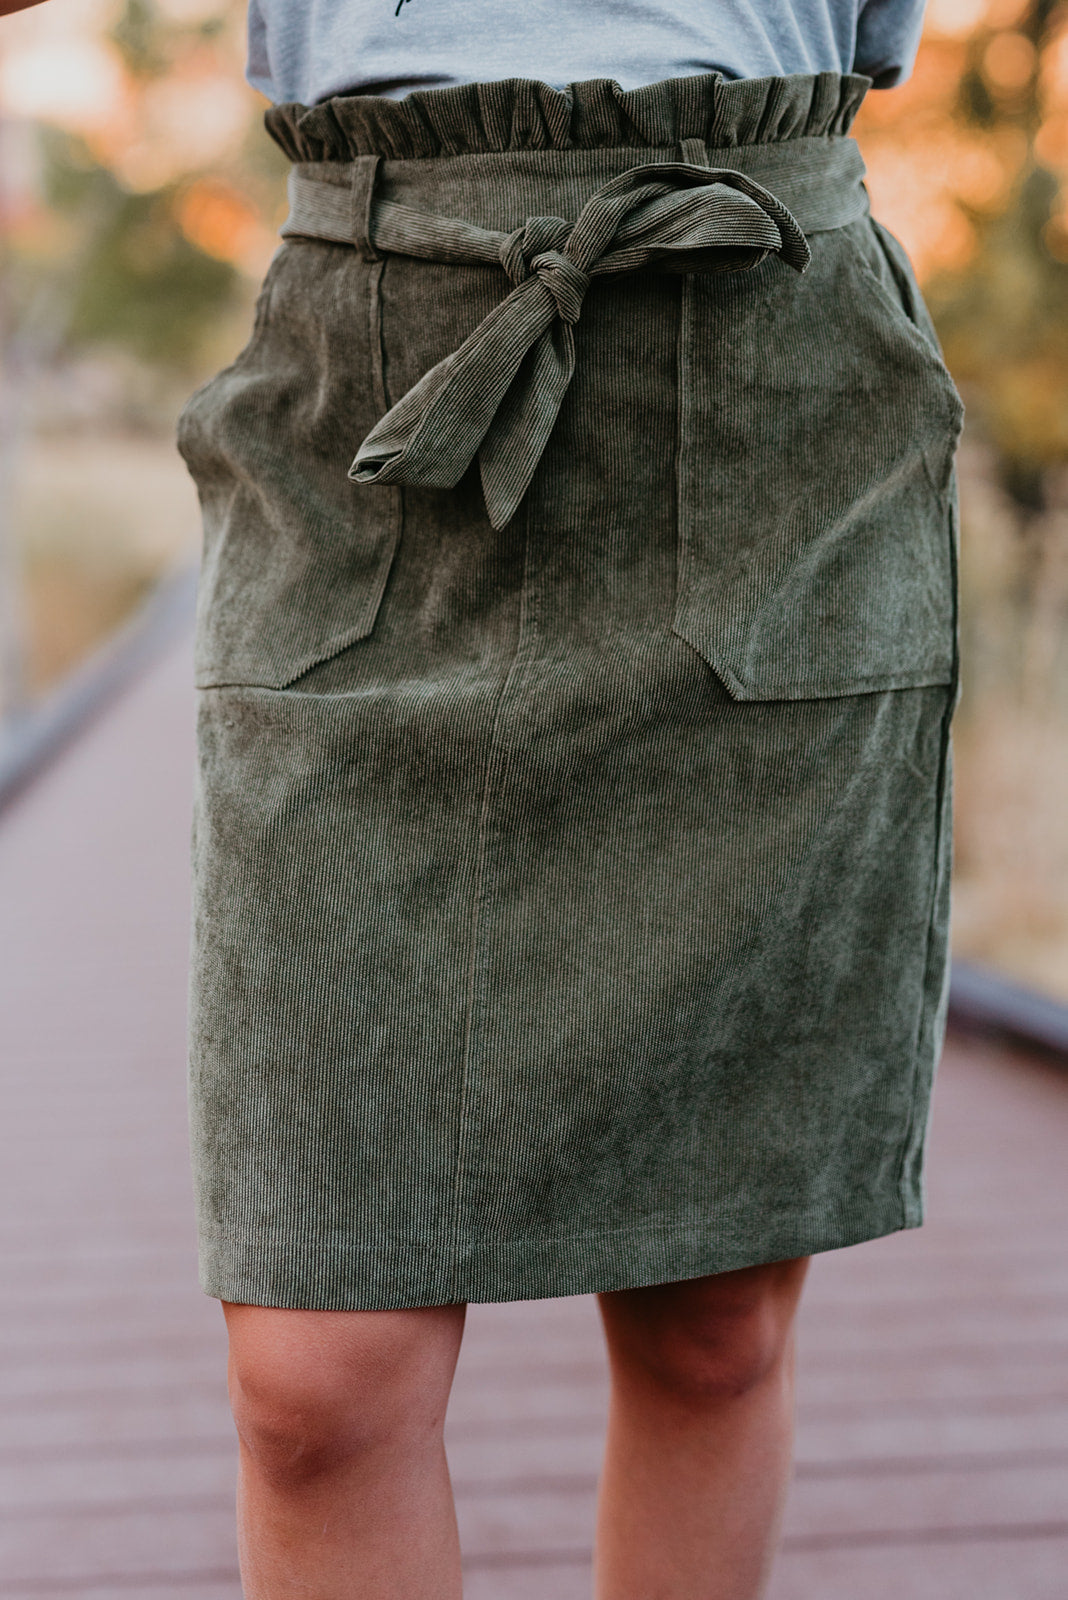 THE OWEN CORDUROY SKIRT IN OLIVE